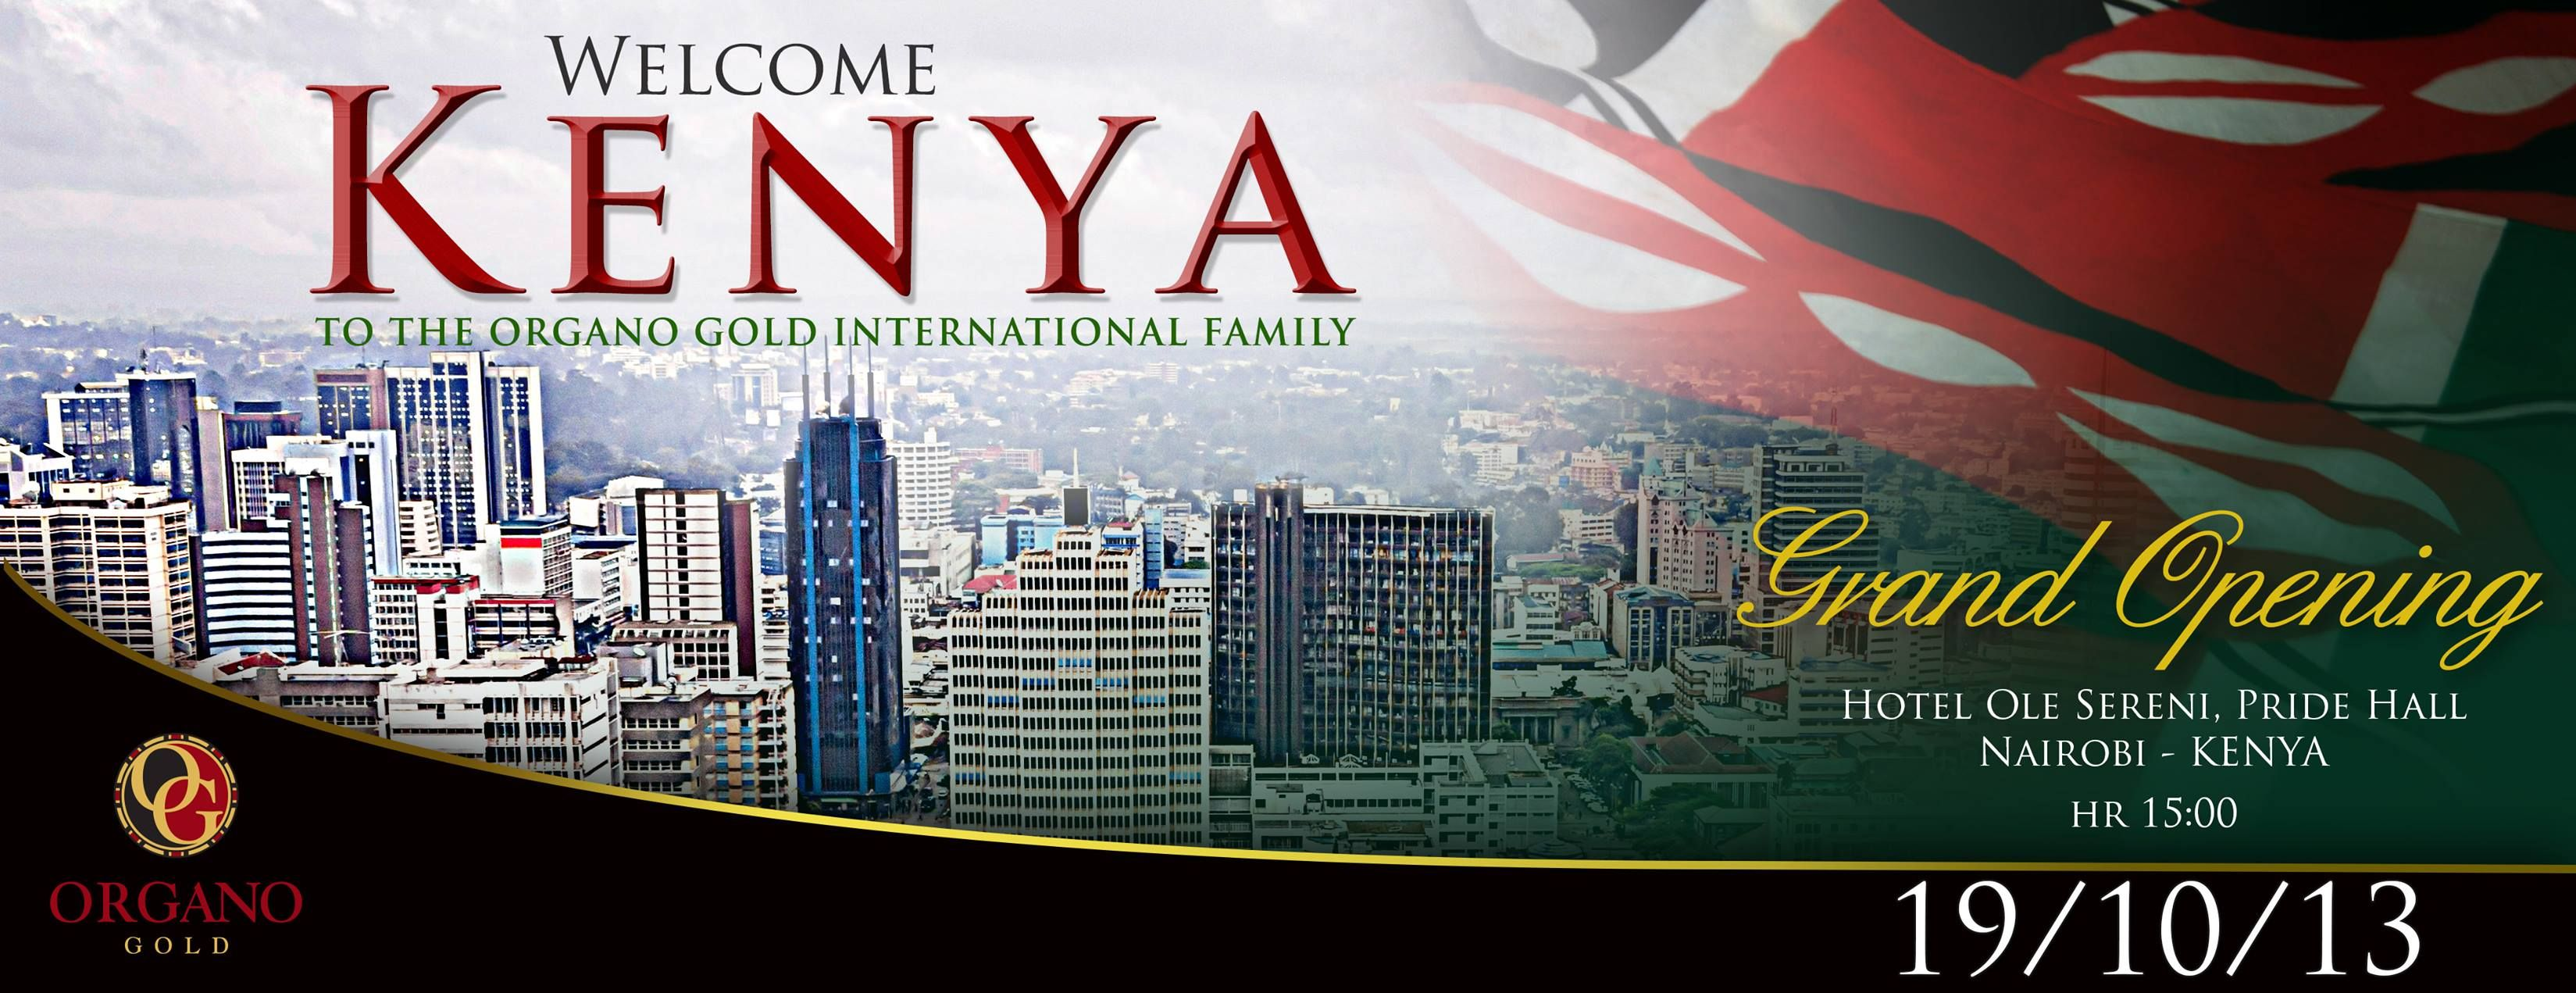 WHO DO YOU KNOW IN KENYA? The current time in Kenya is